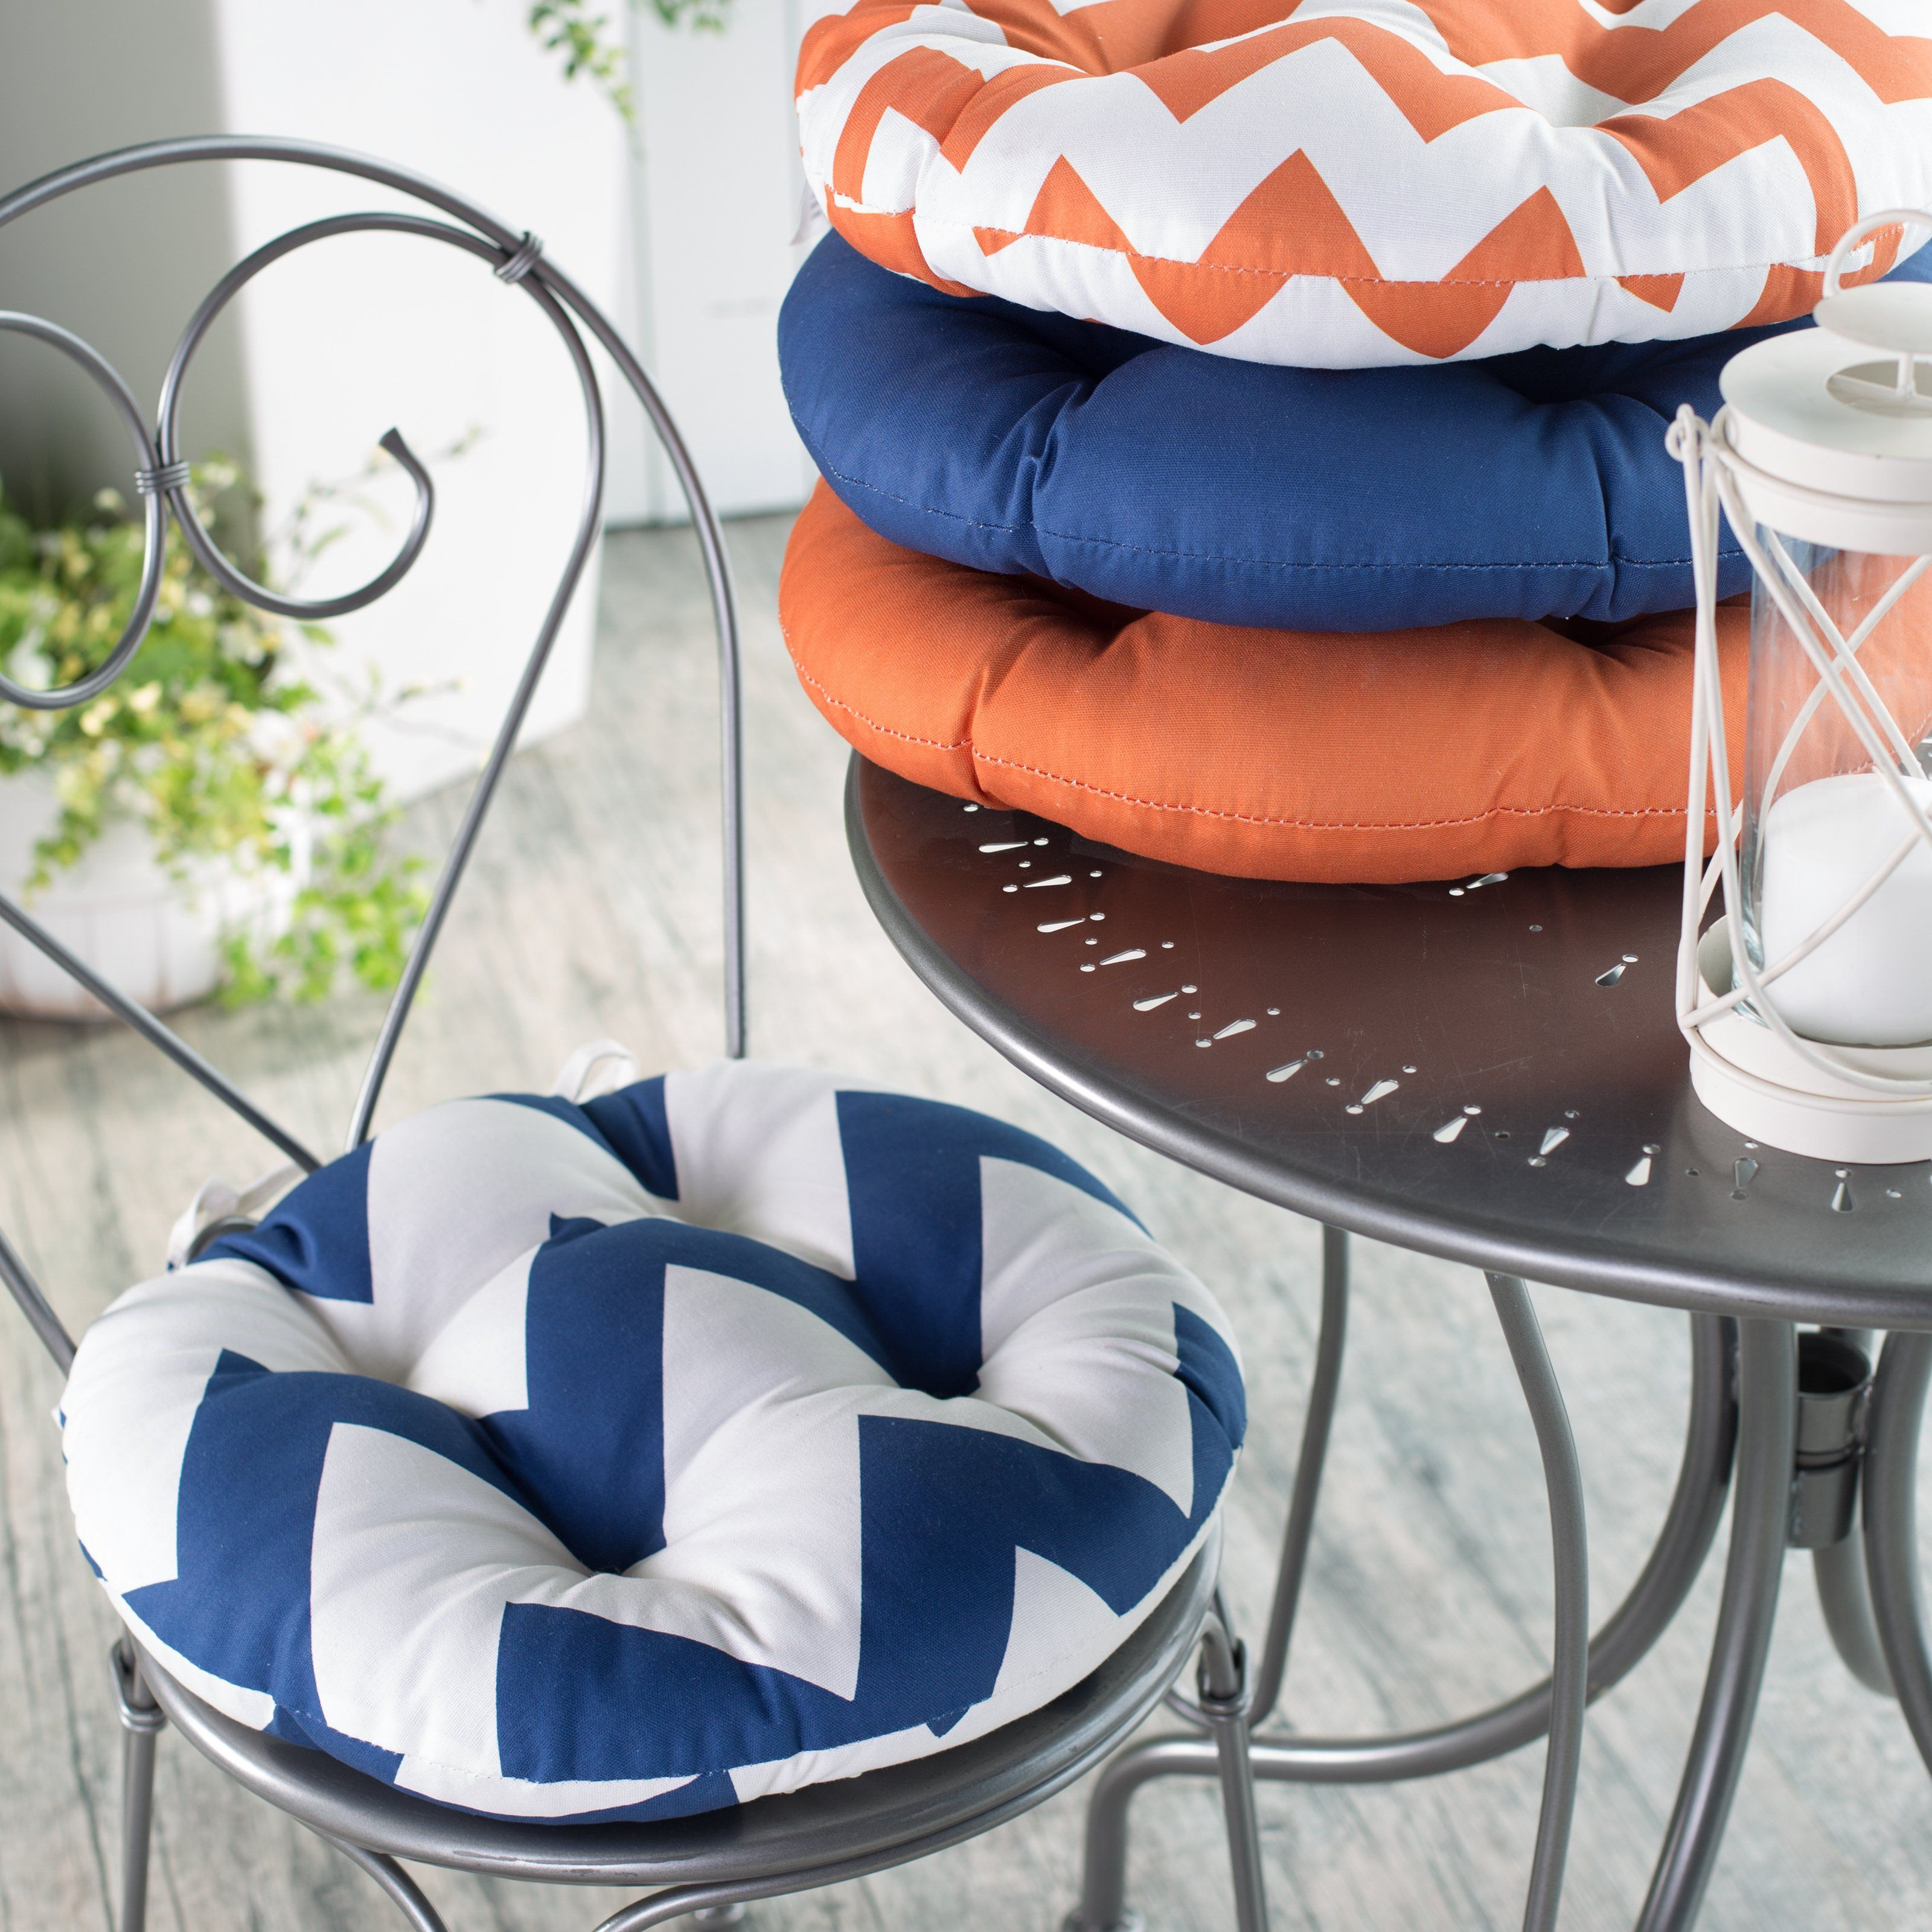 Strange Valencia Bistro Outdoor Round Seat Cushion 16 In Diam Home Remodeling Inspirations Cosmcuboardxyz